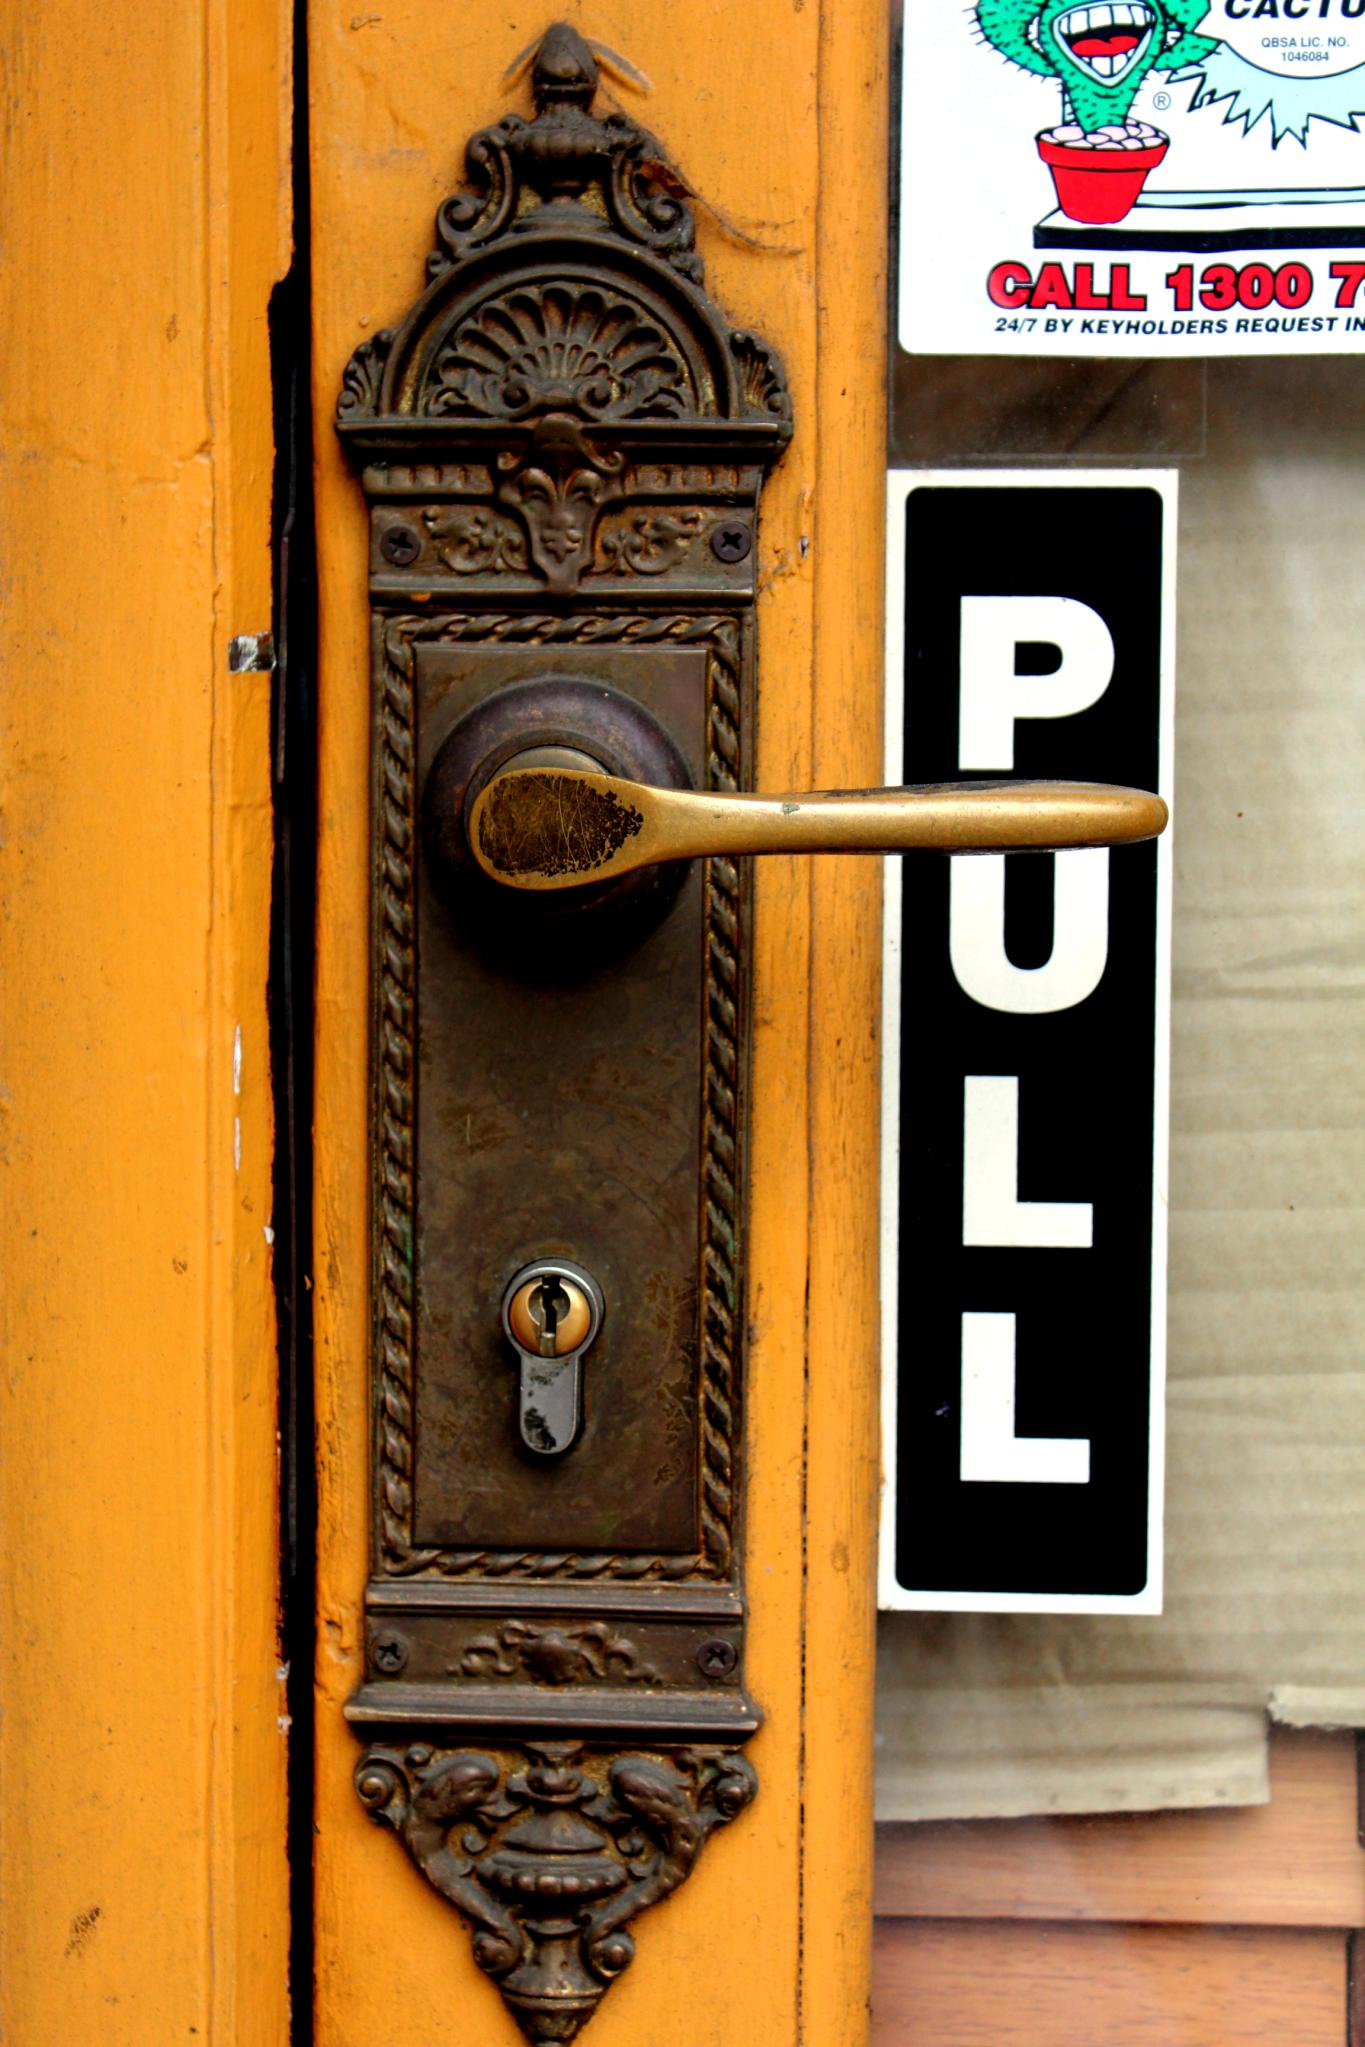 Lever Door Handle With 'Pull' Sign